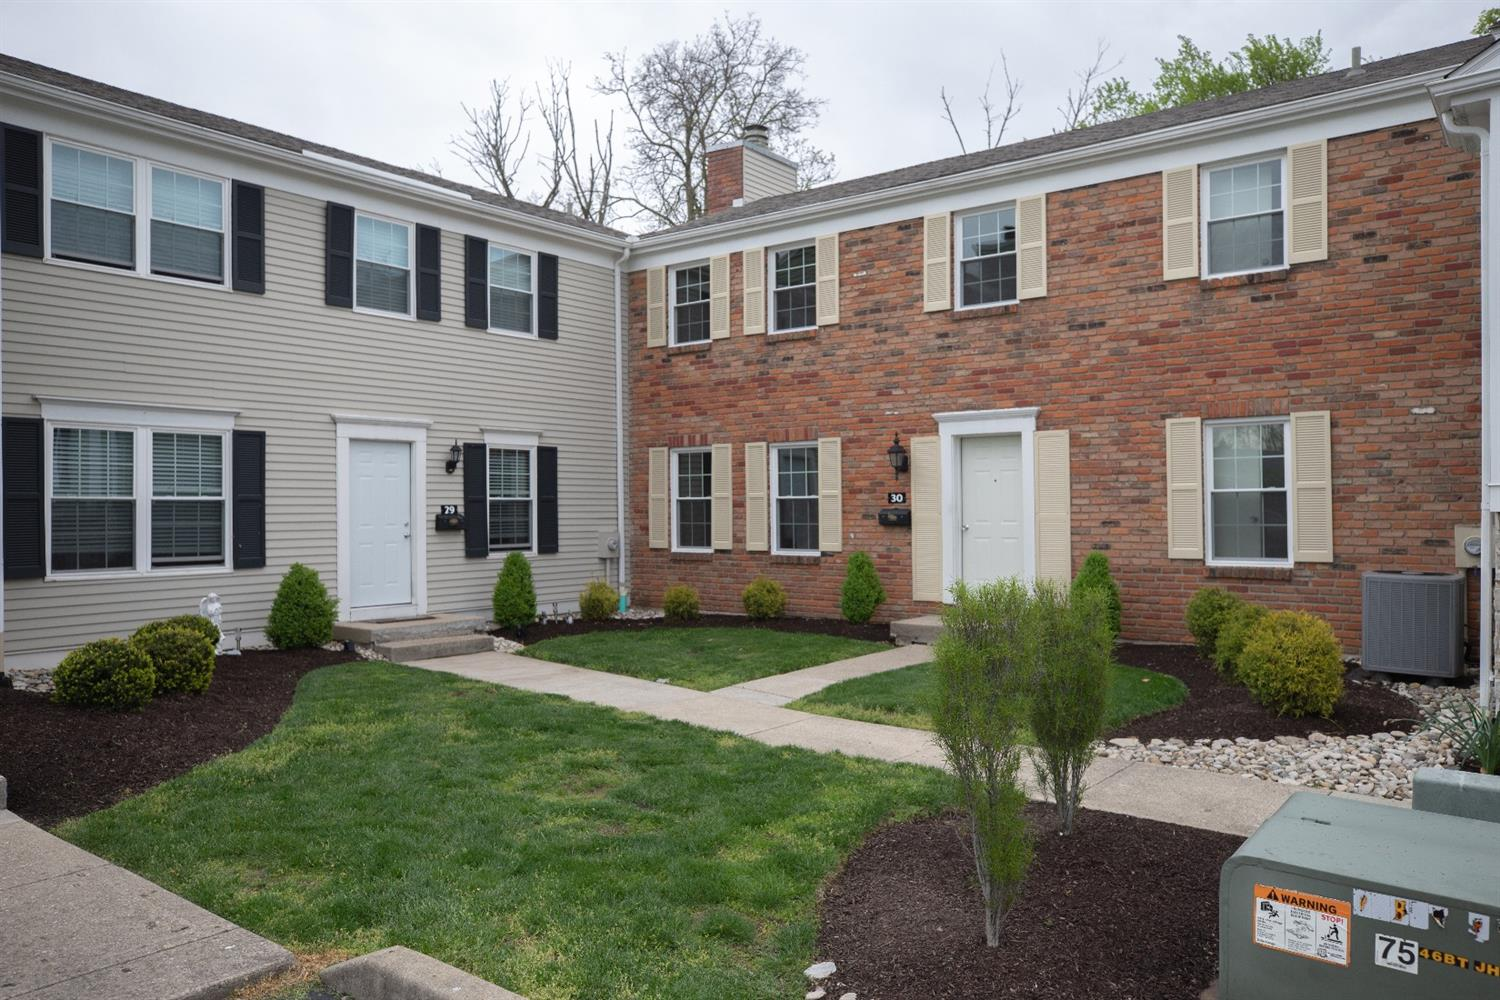 Property for sale at 30 Applewood Drive, Fairfield,  Ohio 45014